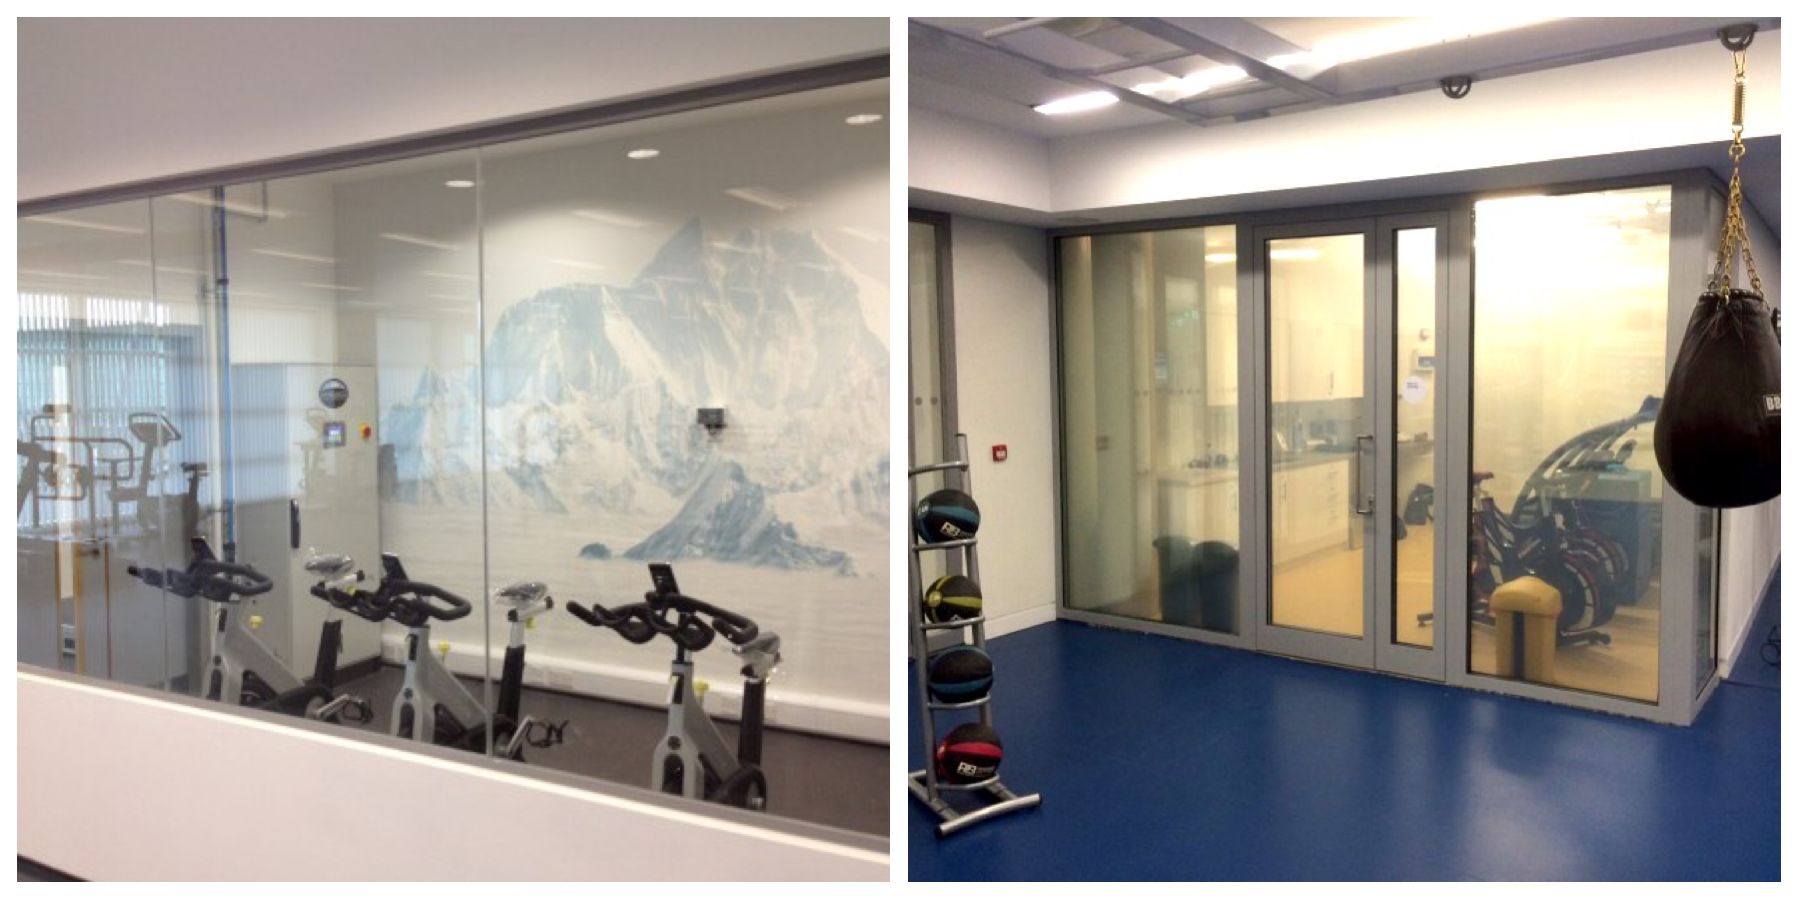 Altitude chambers at St George's Park (left) and Etihad Training Complex (right)